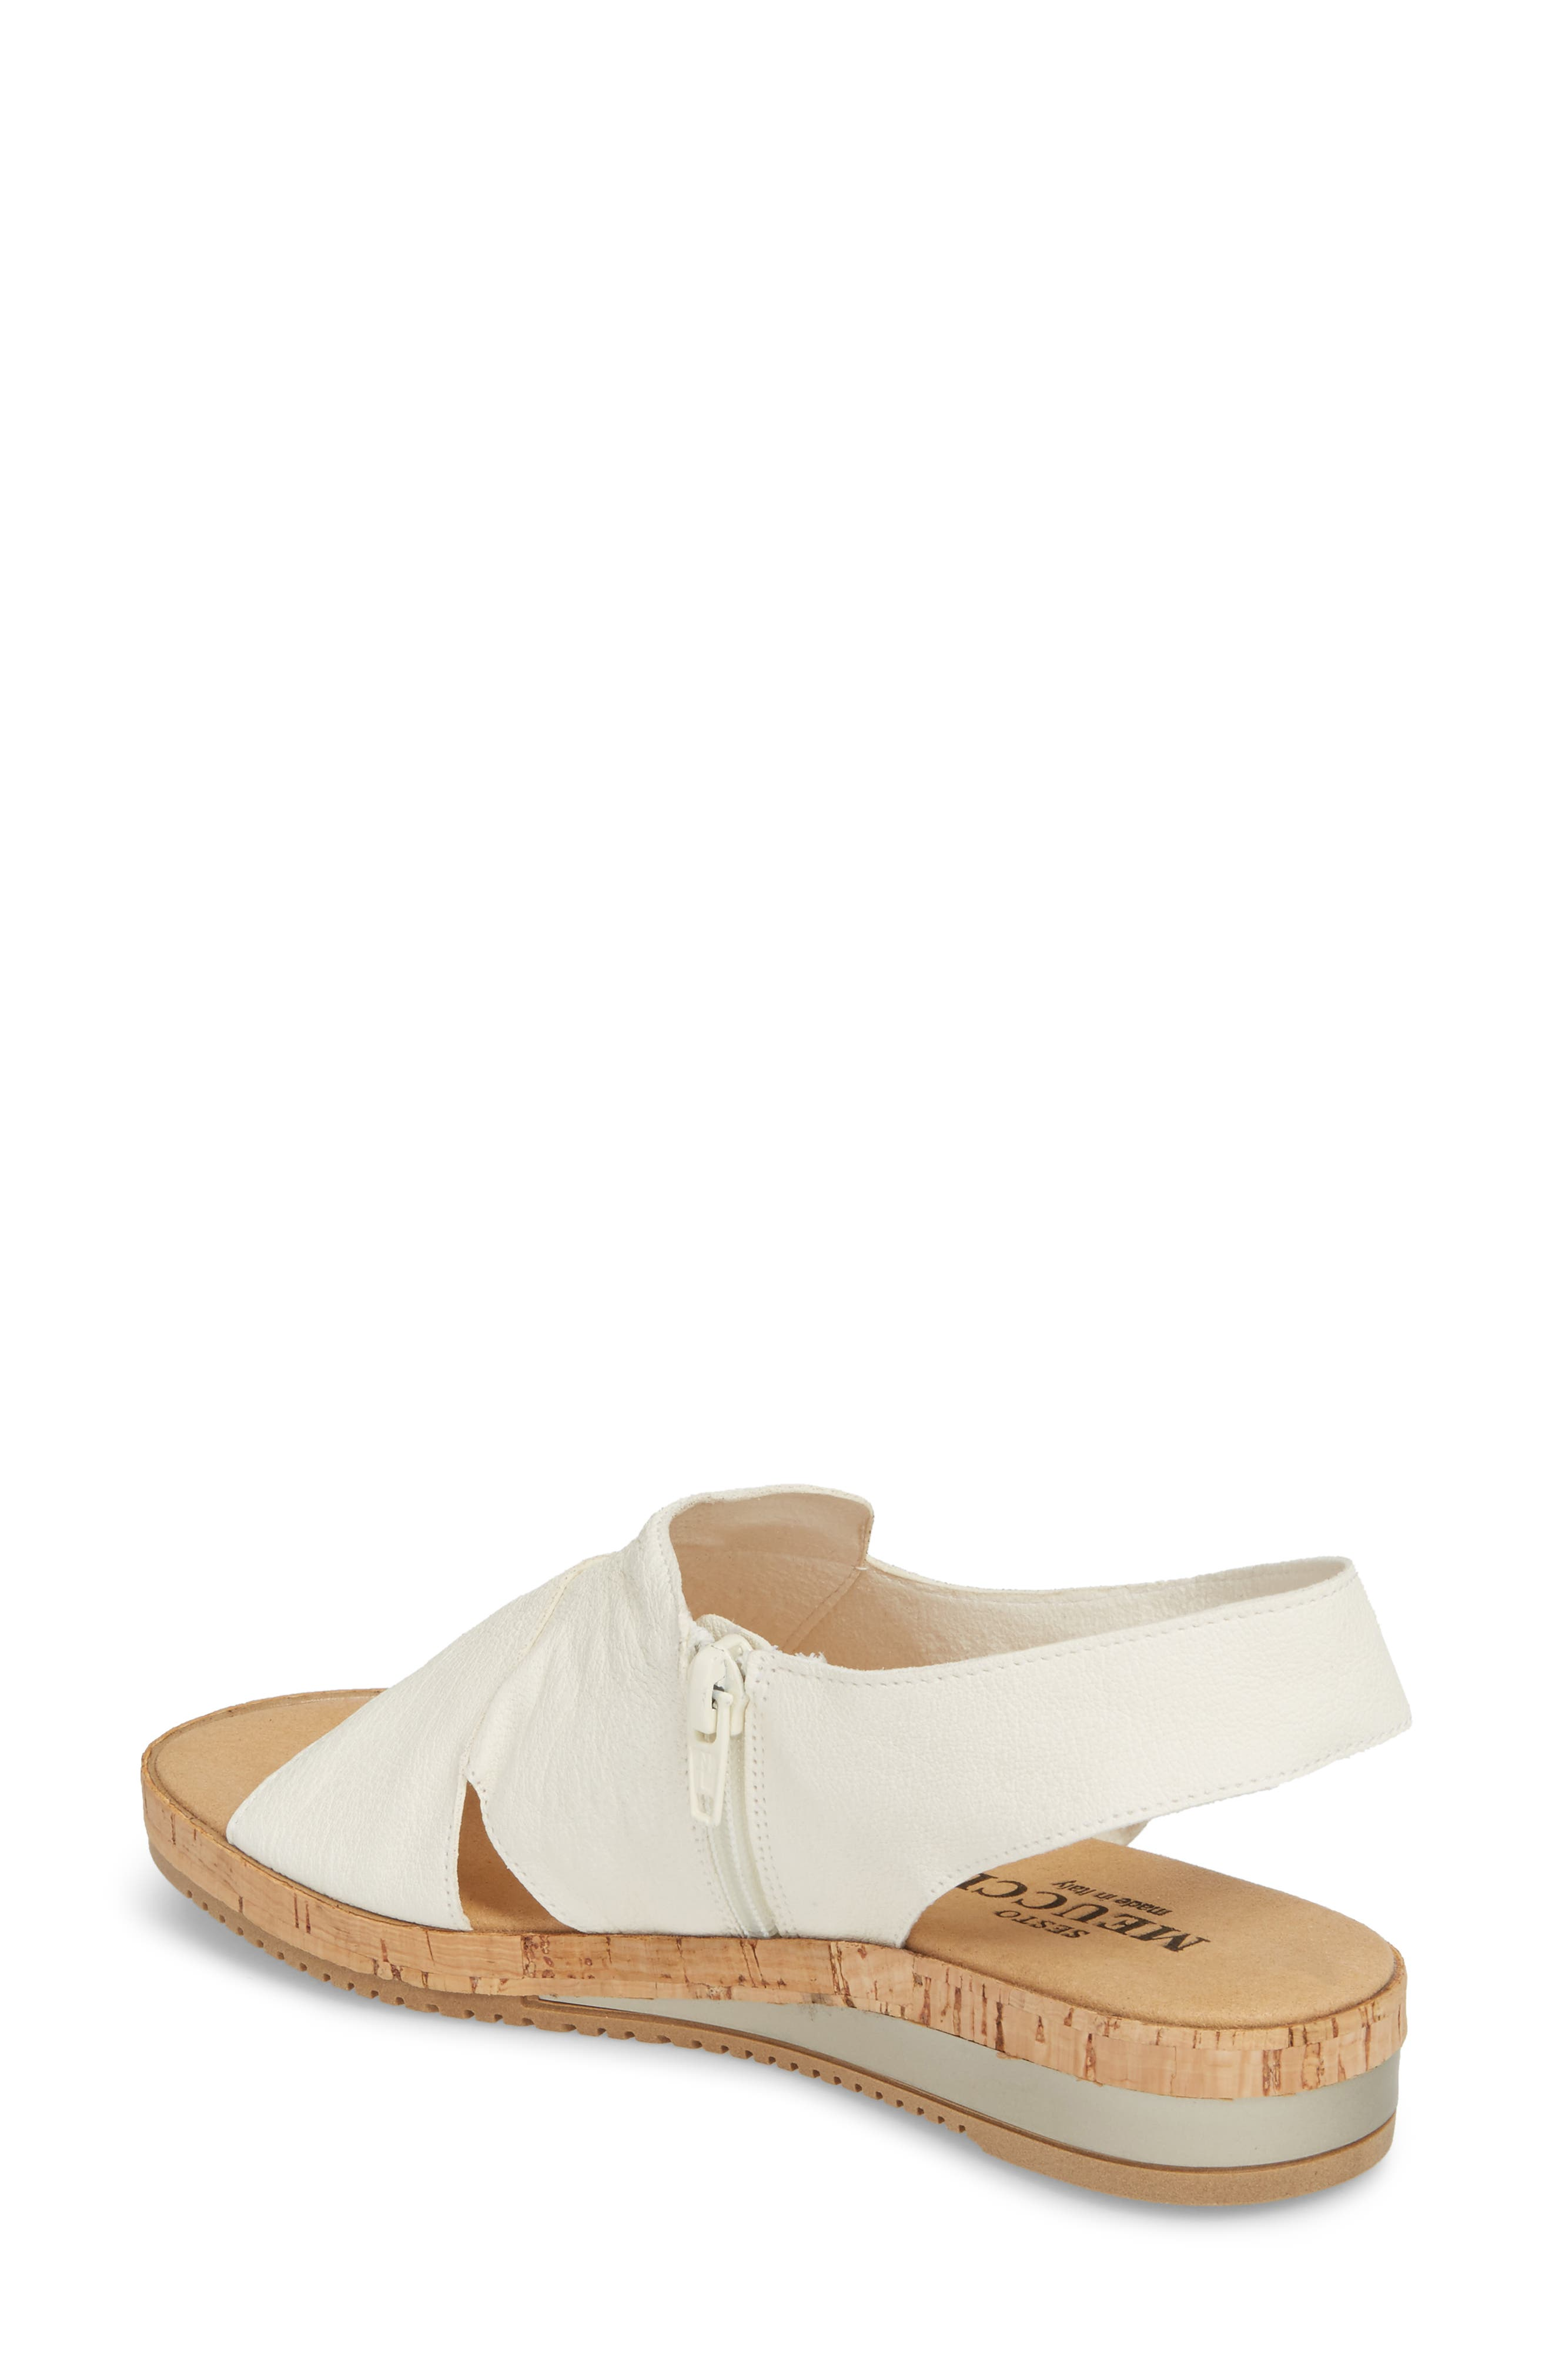 Sylke Sandal,                             Alternate thumbnail 2, color,                             WHITE LEATHER